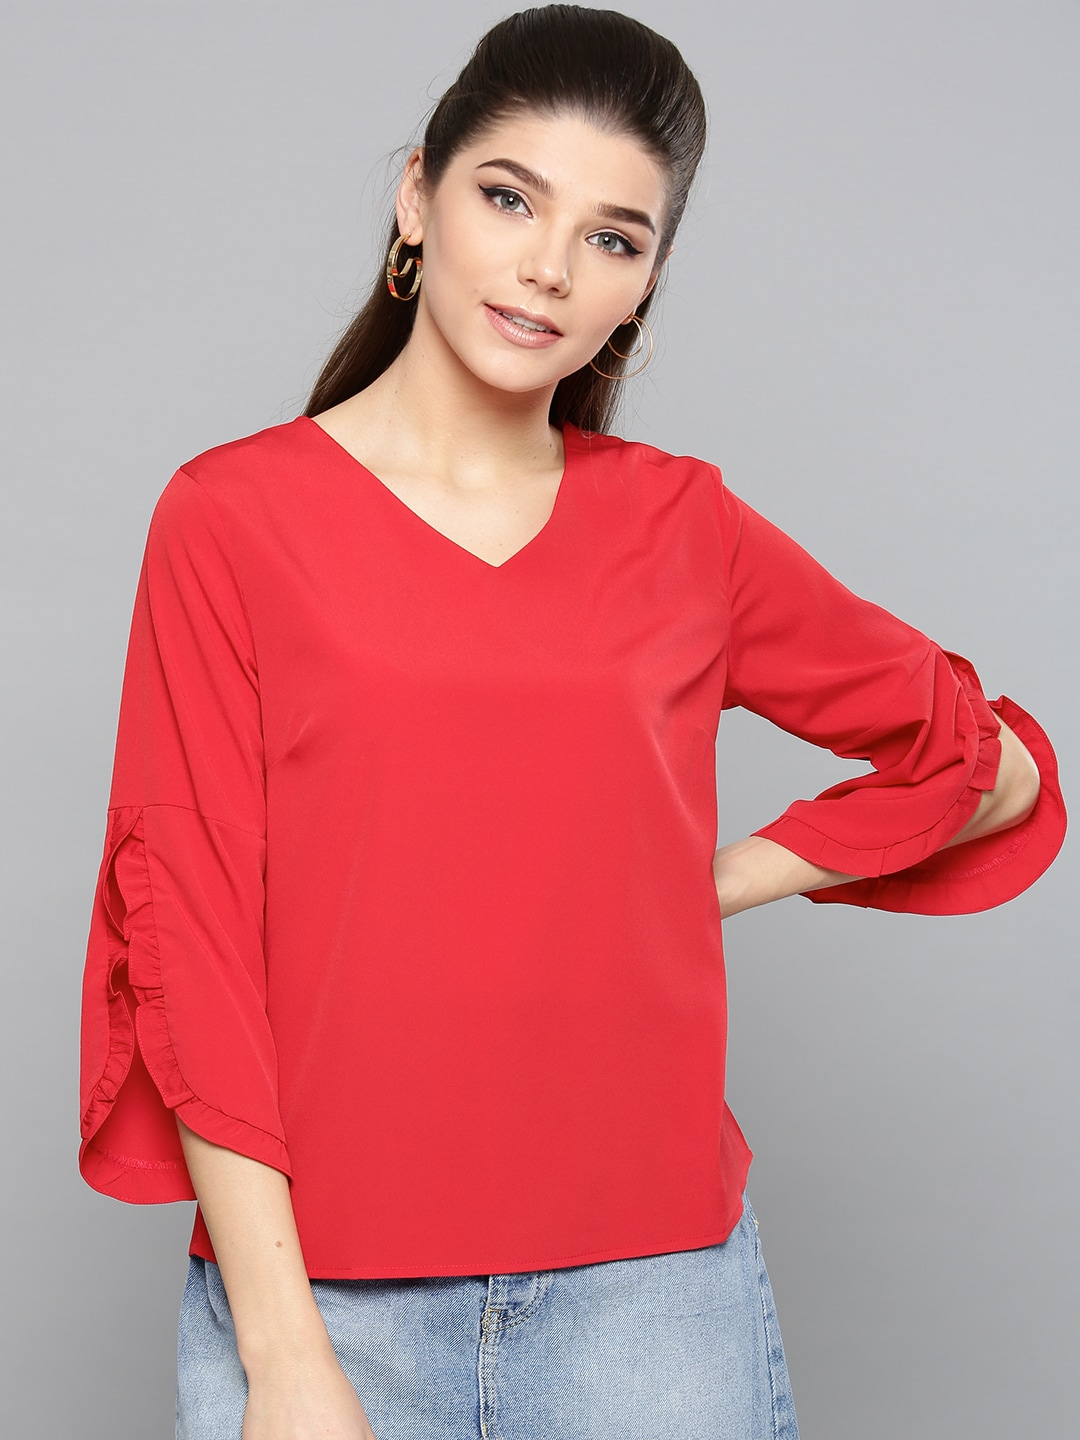 0bf0292e9d74ca Harpa Casual Tops - Buy Harpa Casual Tops online in India